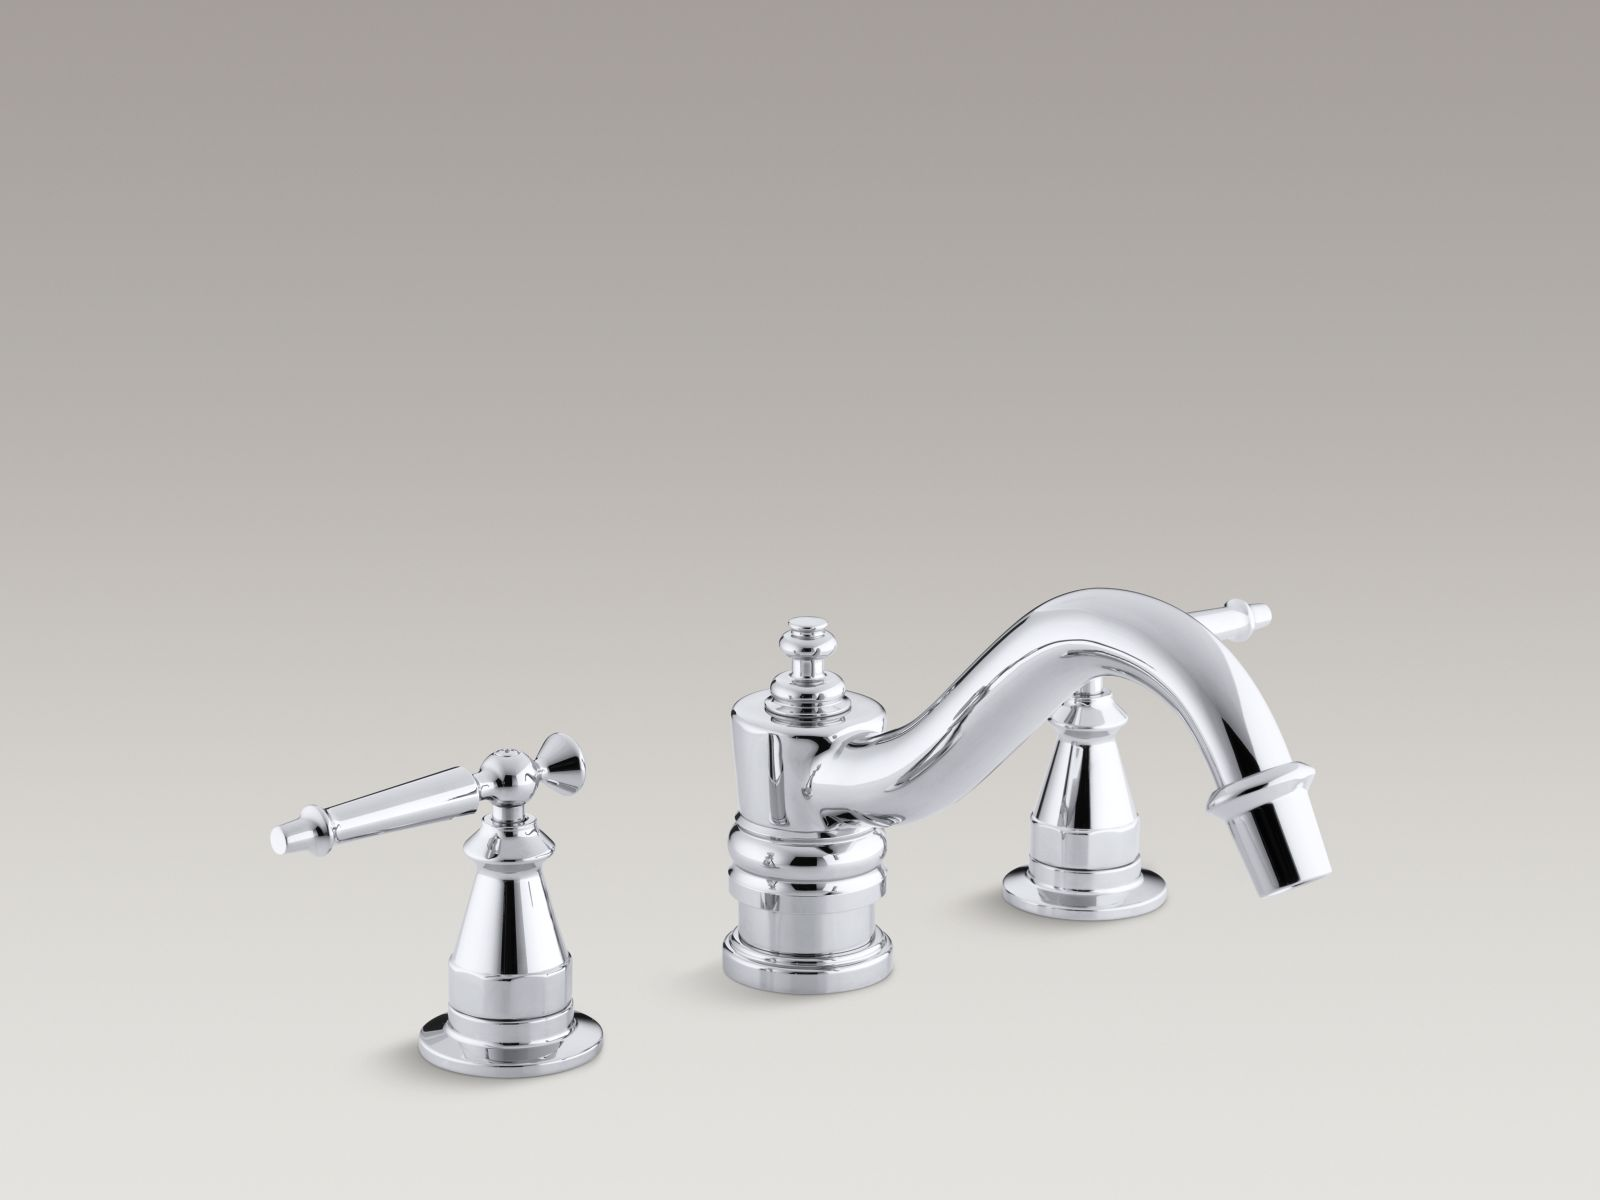 Kohler Antique K-T125-4-CP Bath faucet trim for deck-mount high-flow valve with lever handles, valve not included Polished Chrome